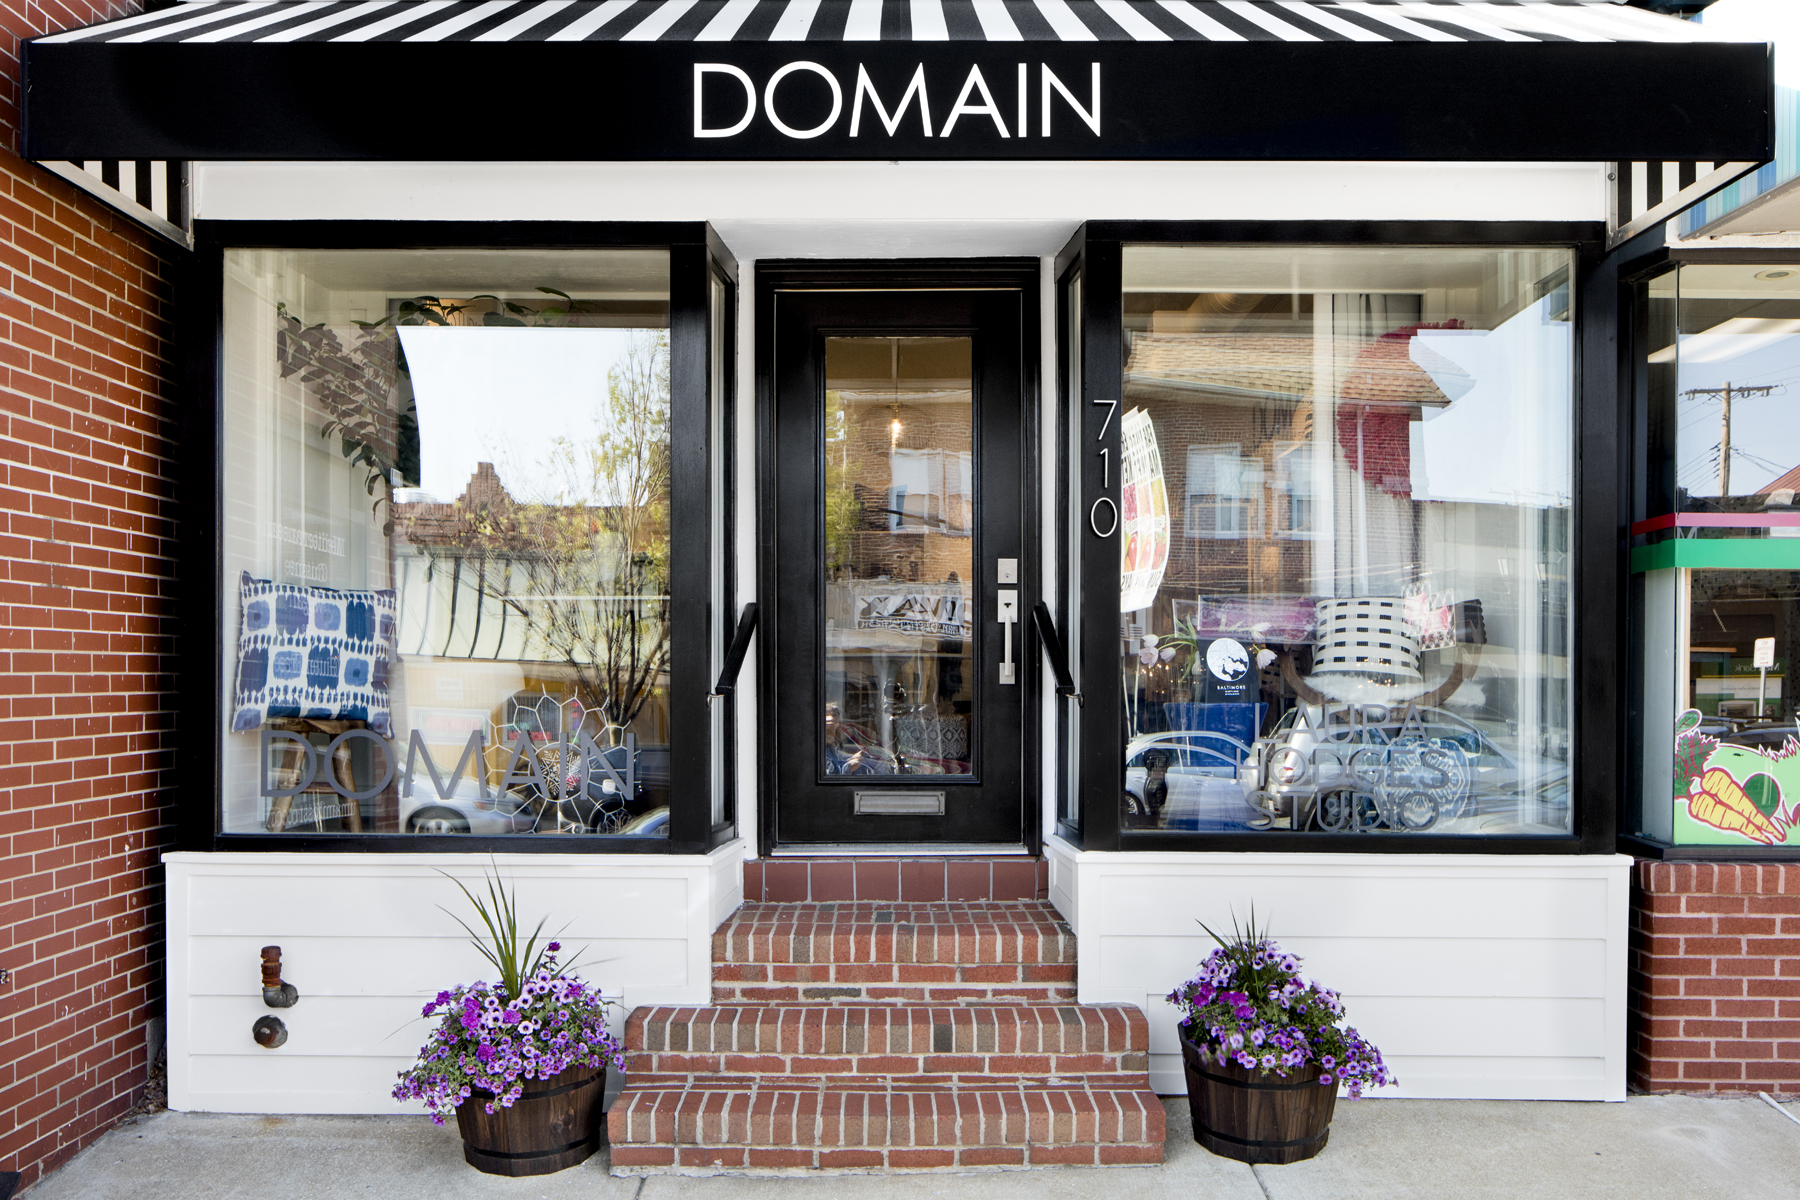 Domain: local and globally sourced fair trade and sustainable home decor, original art, gifts, and one-of-a-kind pieces.